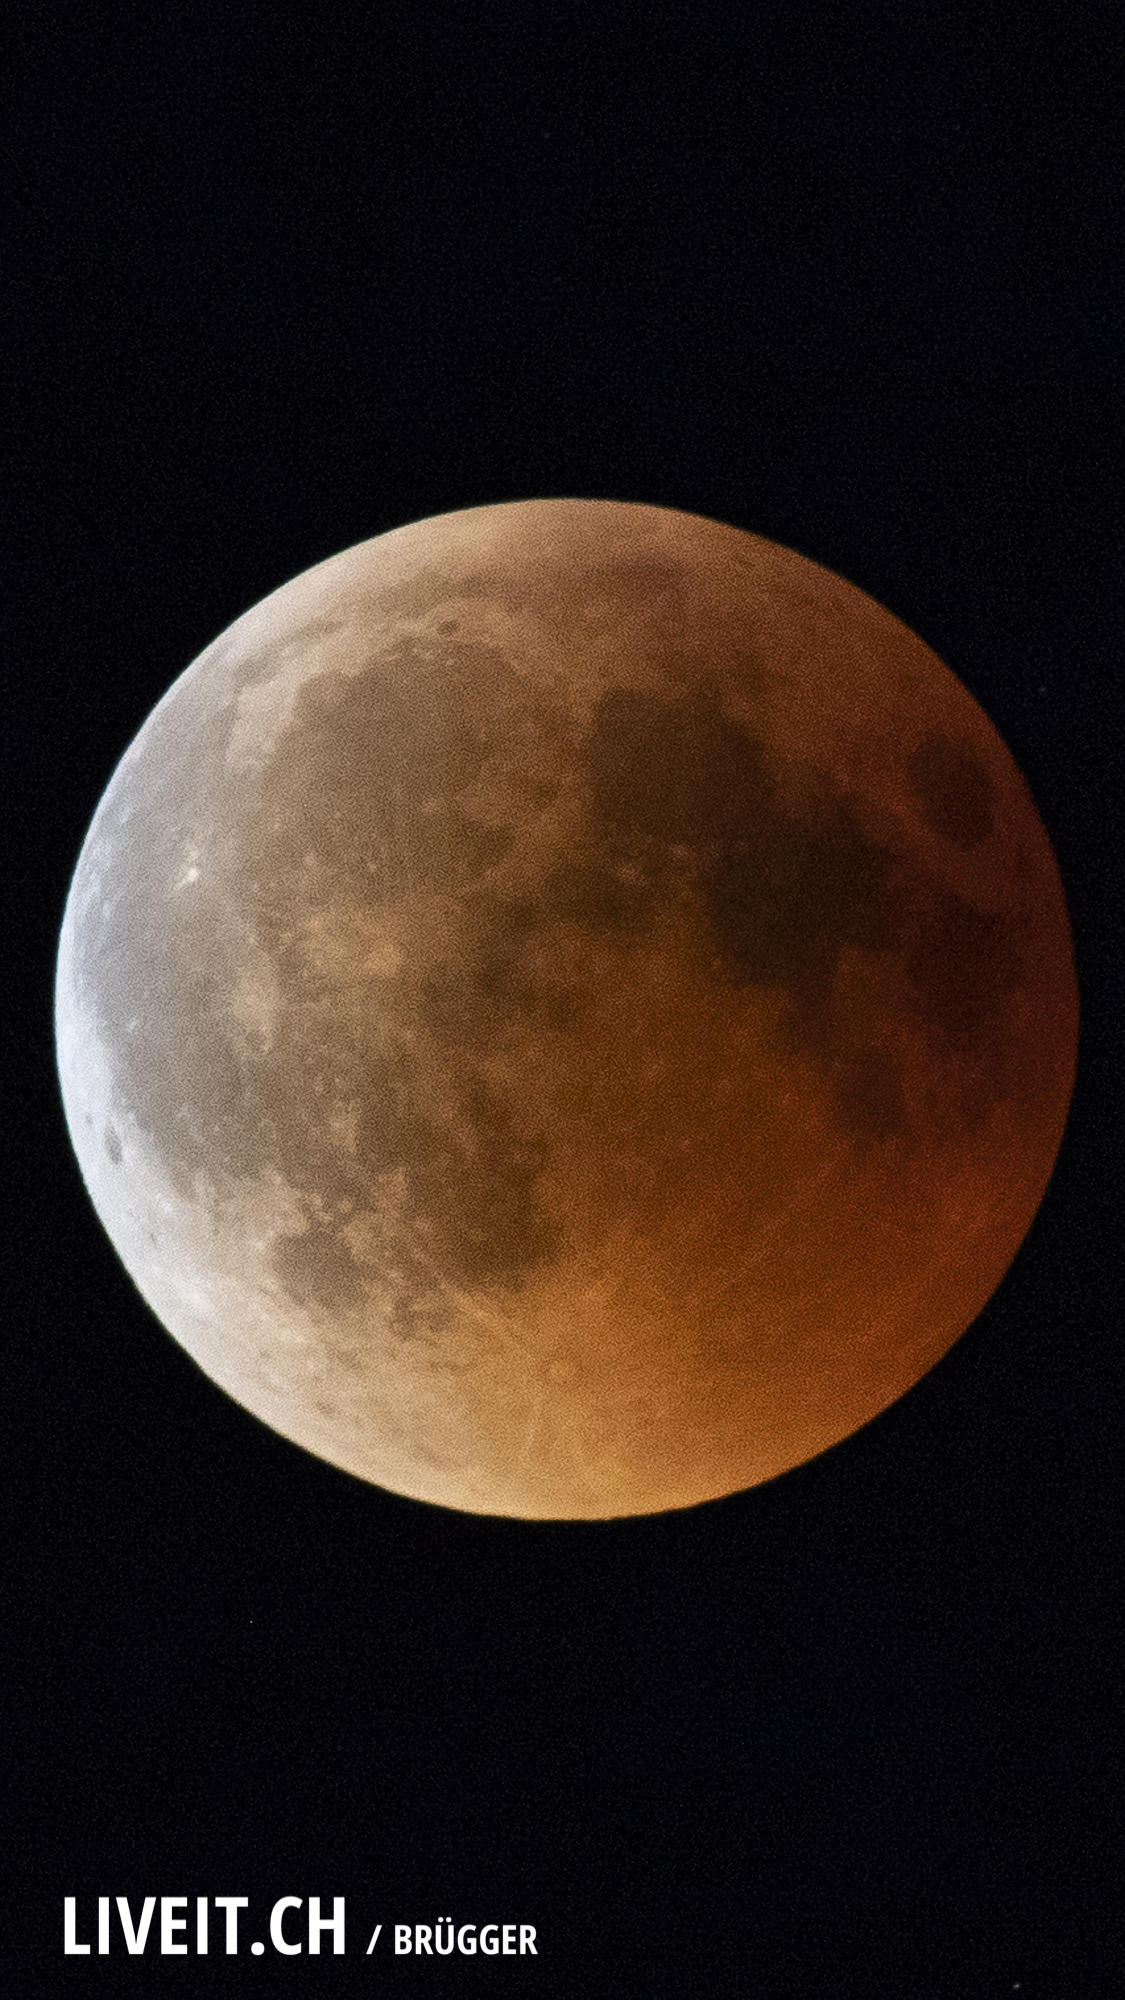 Blutmond 27.07.2018 am Hasliberg. (Dominic Bruegger Photography)